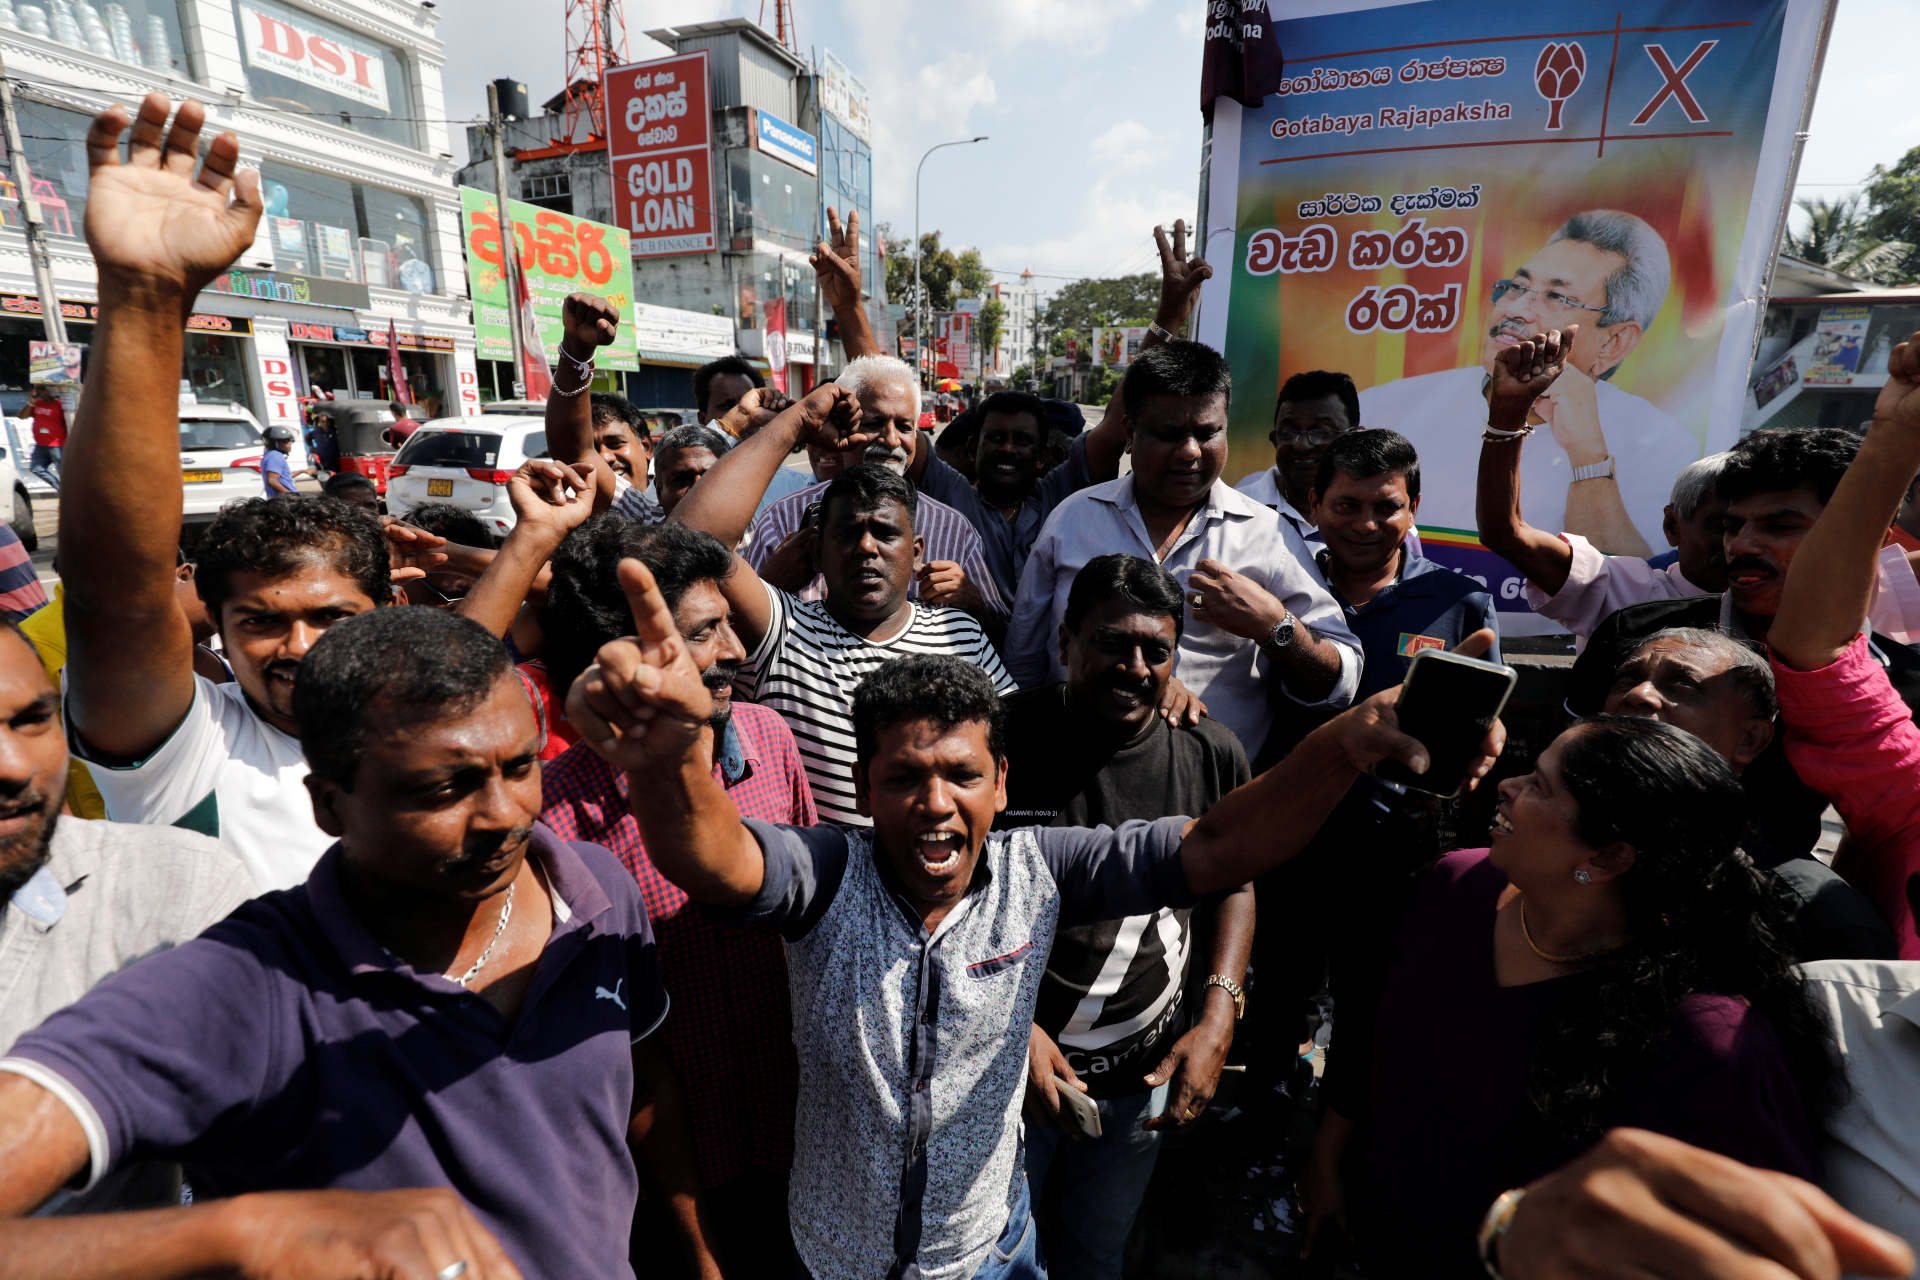 Sri Lanka's return to ethnic majoritarianism